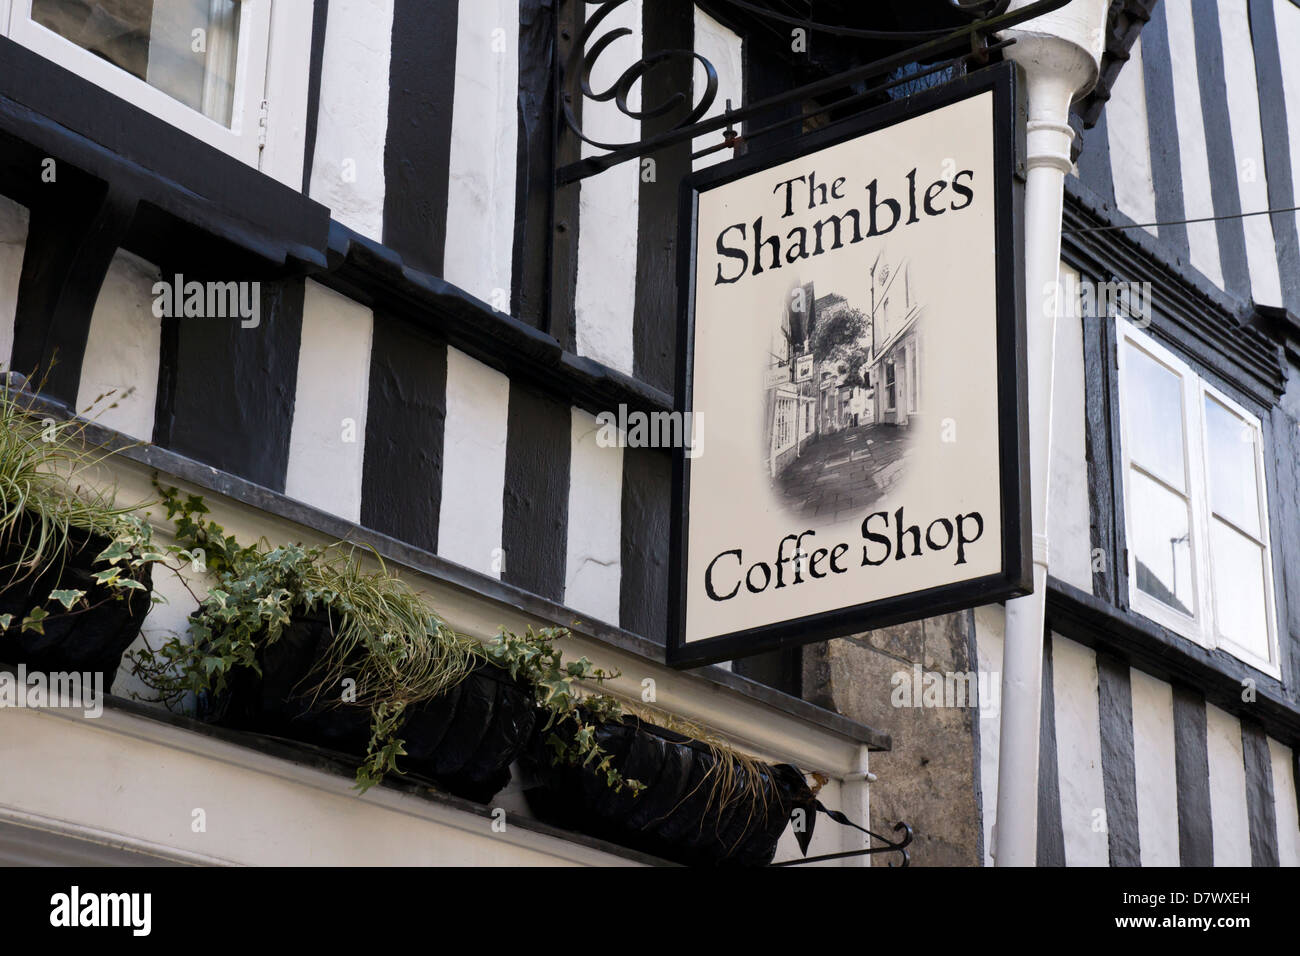 https://c8.alamy.com/comp/D7WXEH/the-shambles-coffee-shop-bradford-on-avon-a-small-town-in-wiltshire-D7WXEH.jpg